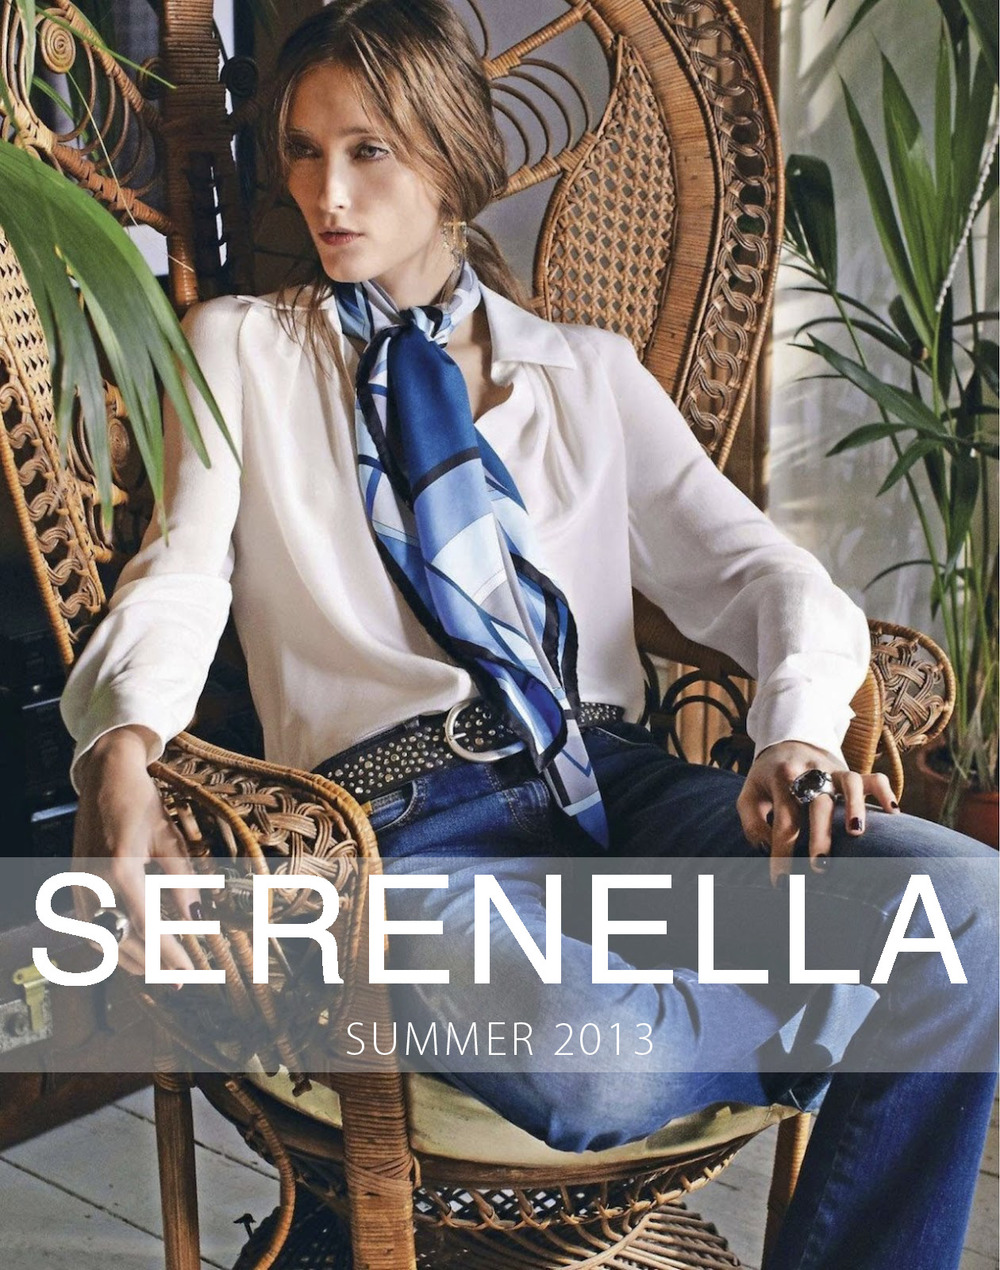 See what Serenella has in store for you this summer in our Summer 2013 Glossi digital magazine!